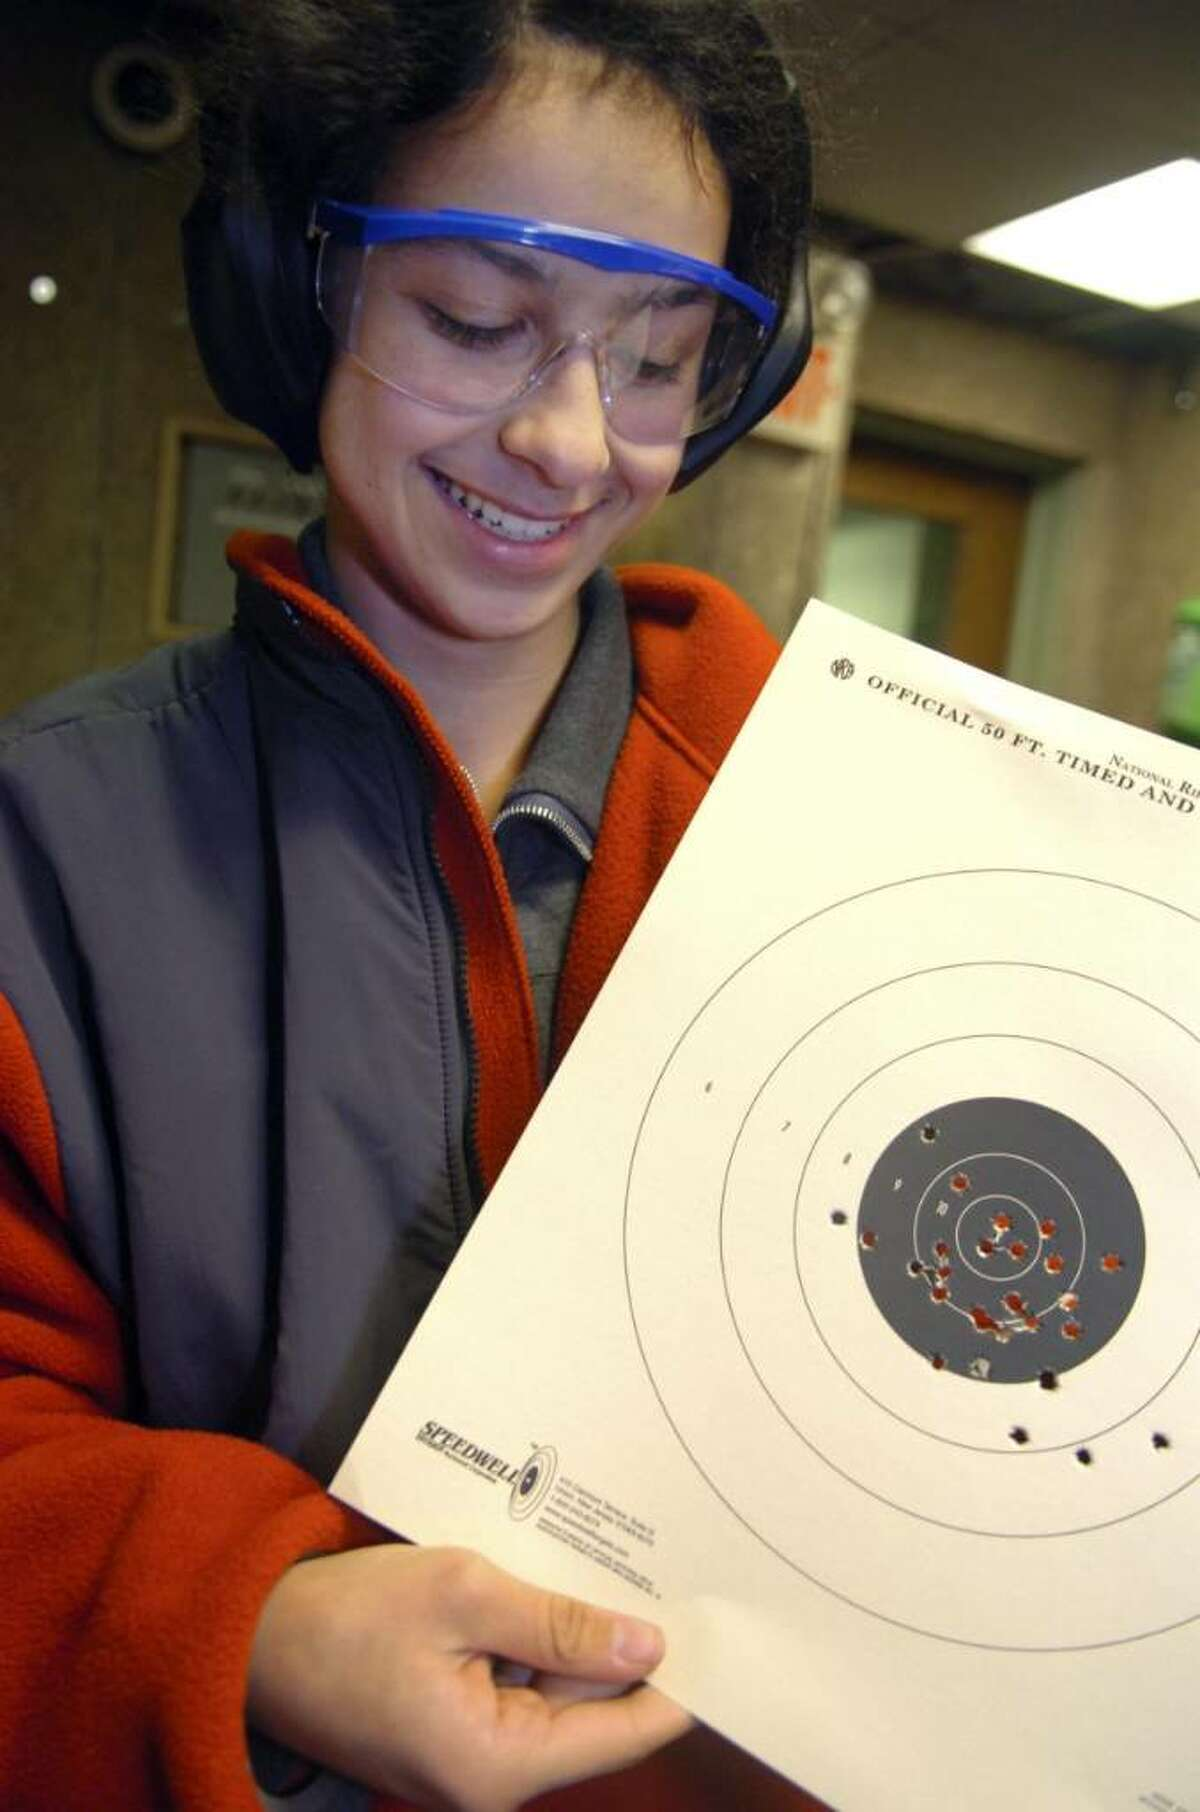 Greenwich, Jan. 10, 2010. Girls scout Alicia King, 15, looks at her target during the troup event at Cos Cob Revolver and Rifle Club. They learned safety and target practice with 22 caliber rifles.